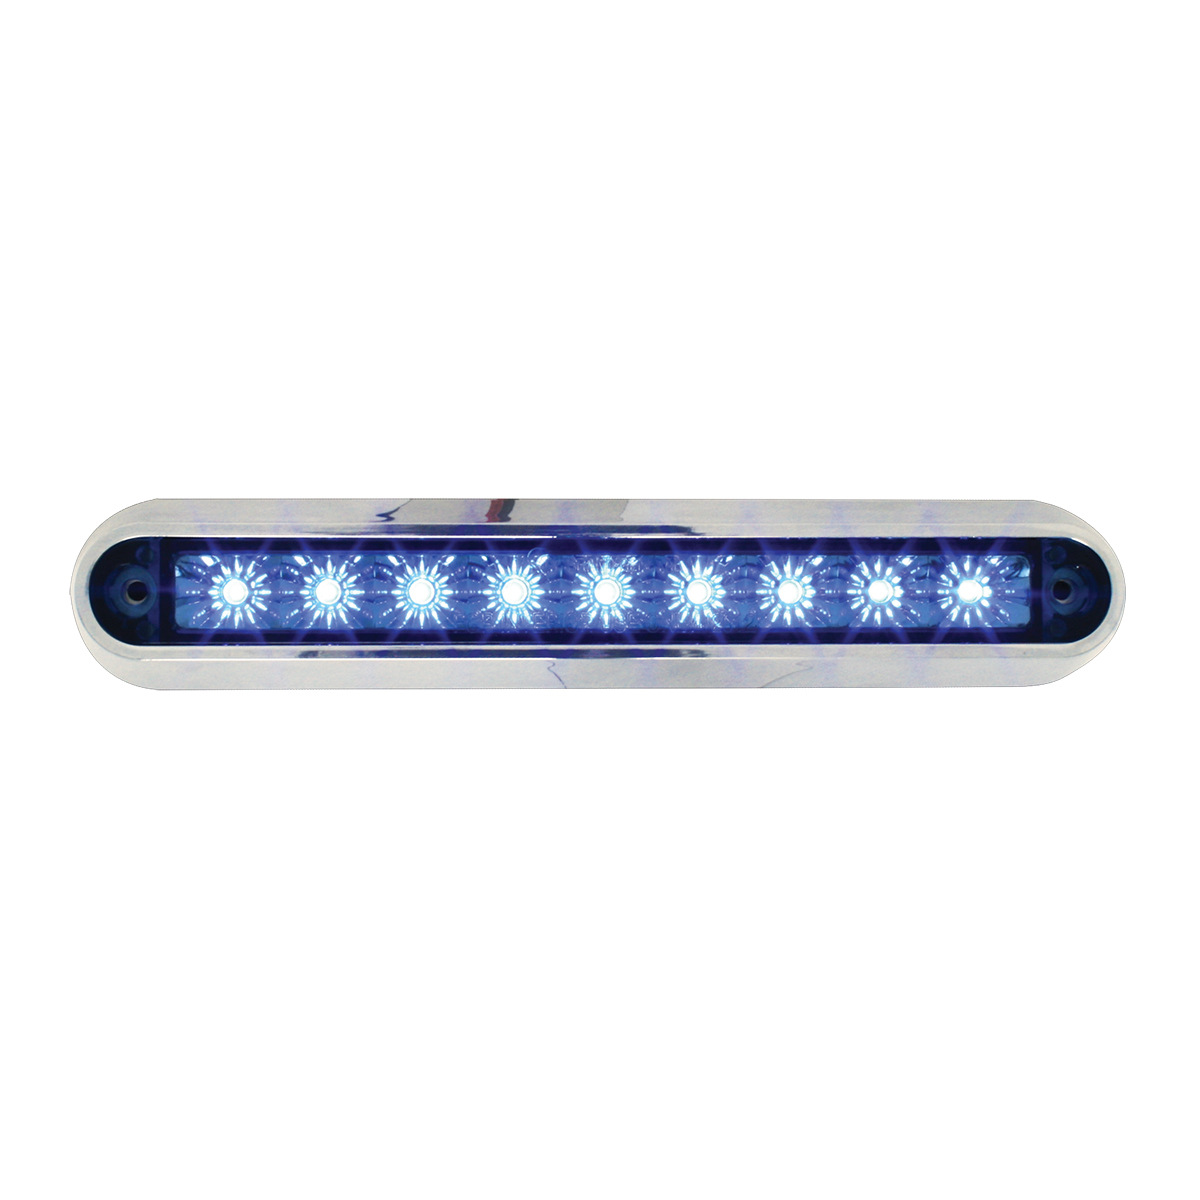 "76095 6.5"" Surface Mount LED Light Bar w/ Chrome Plastic Base"